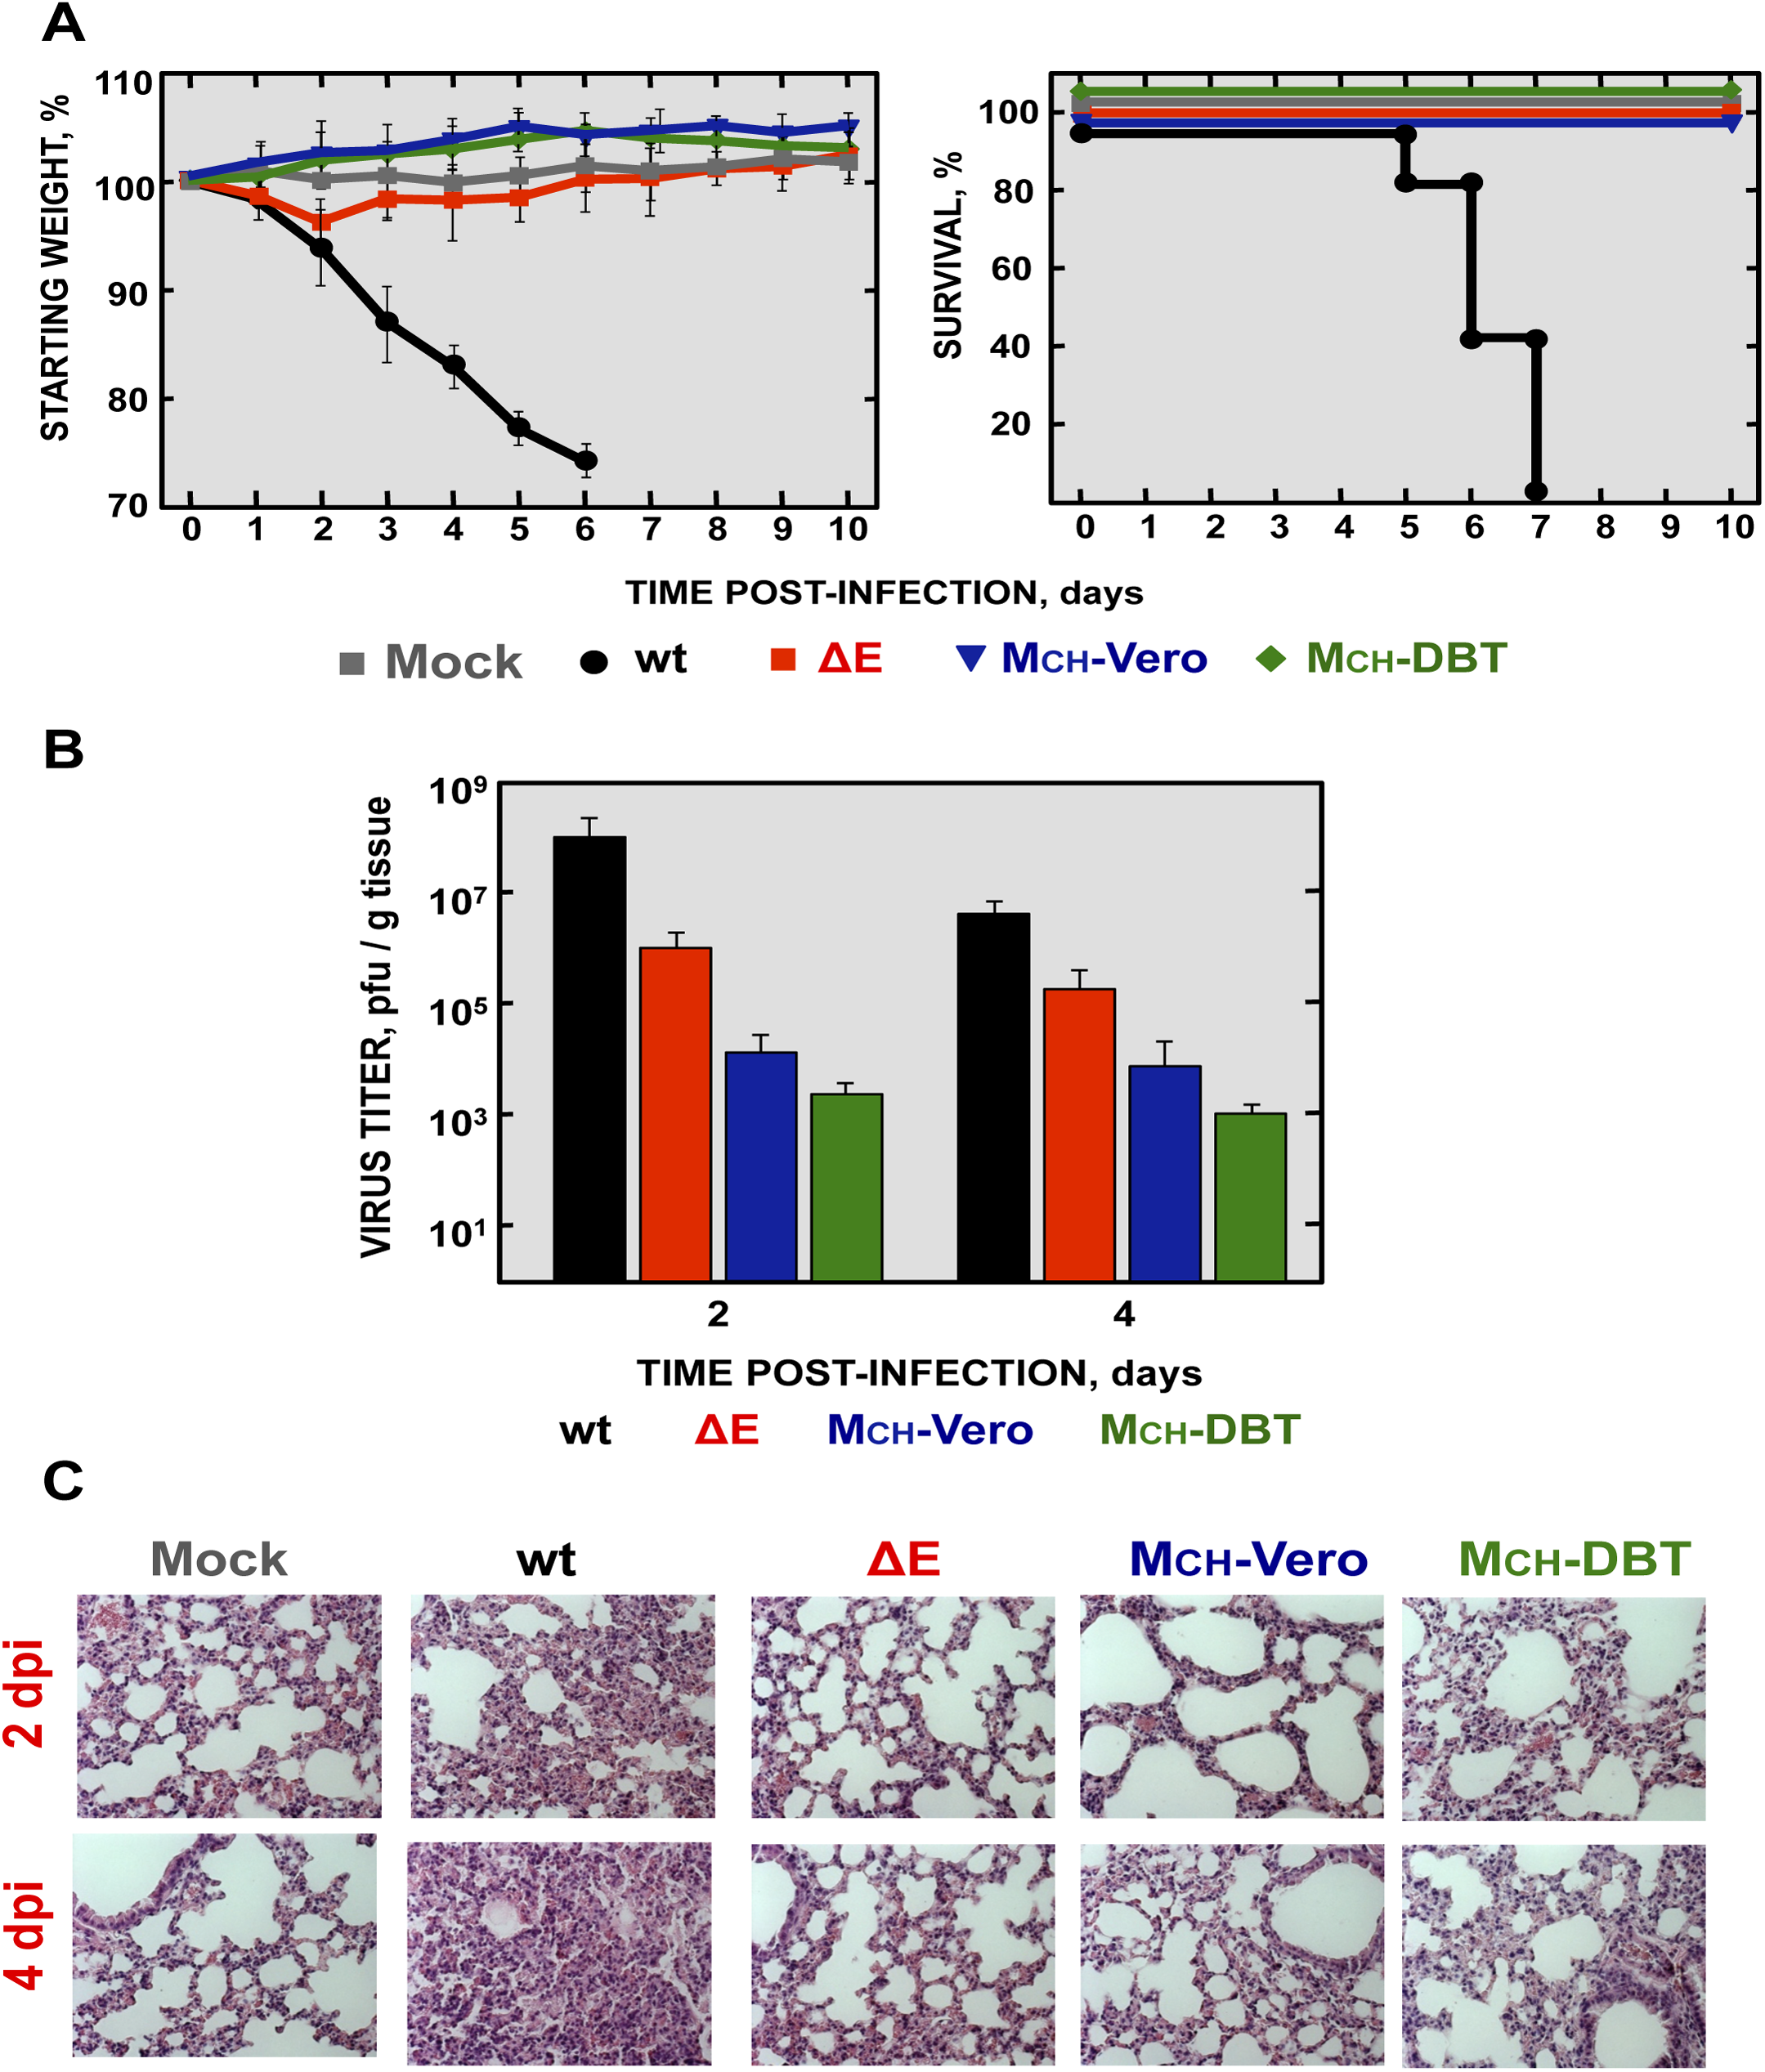 Virulence and viral growth of SARS-CoV-∆E after serial passage in cell culture.